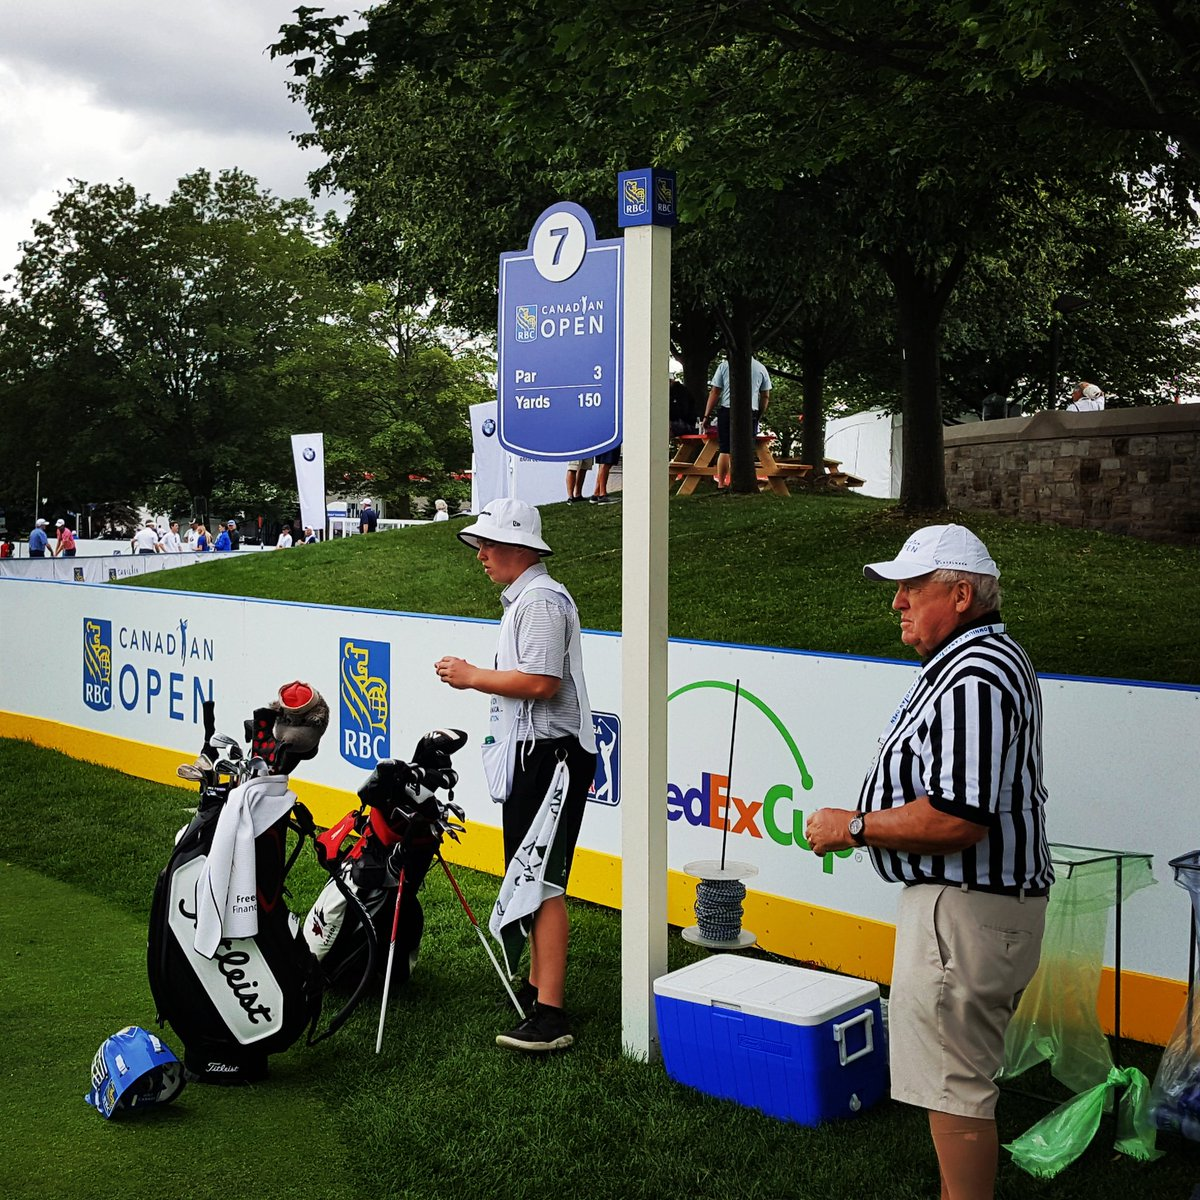 Two minutes for looking so good.  Hockey boards and refs set up on par-3 7th hole this week @RBCCanadianOpen #pgatour #golf <br>http://pic.twitter.com/m1uxbwCKtM